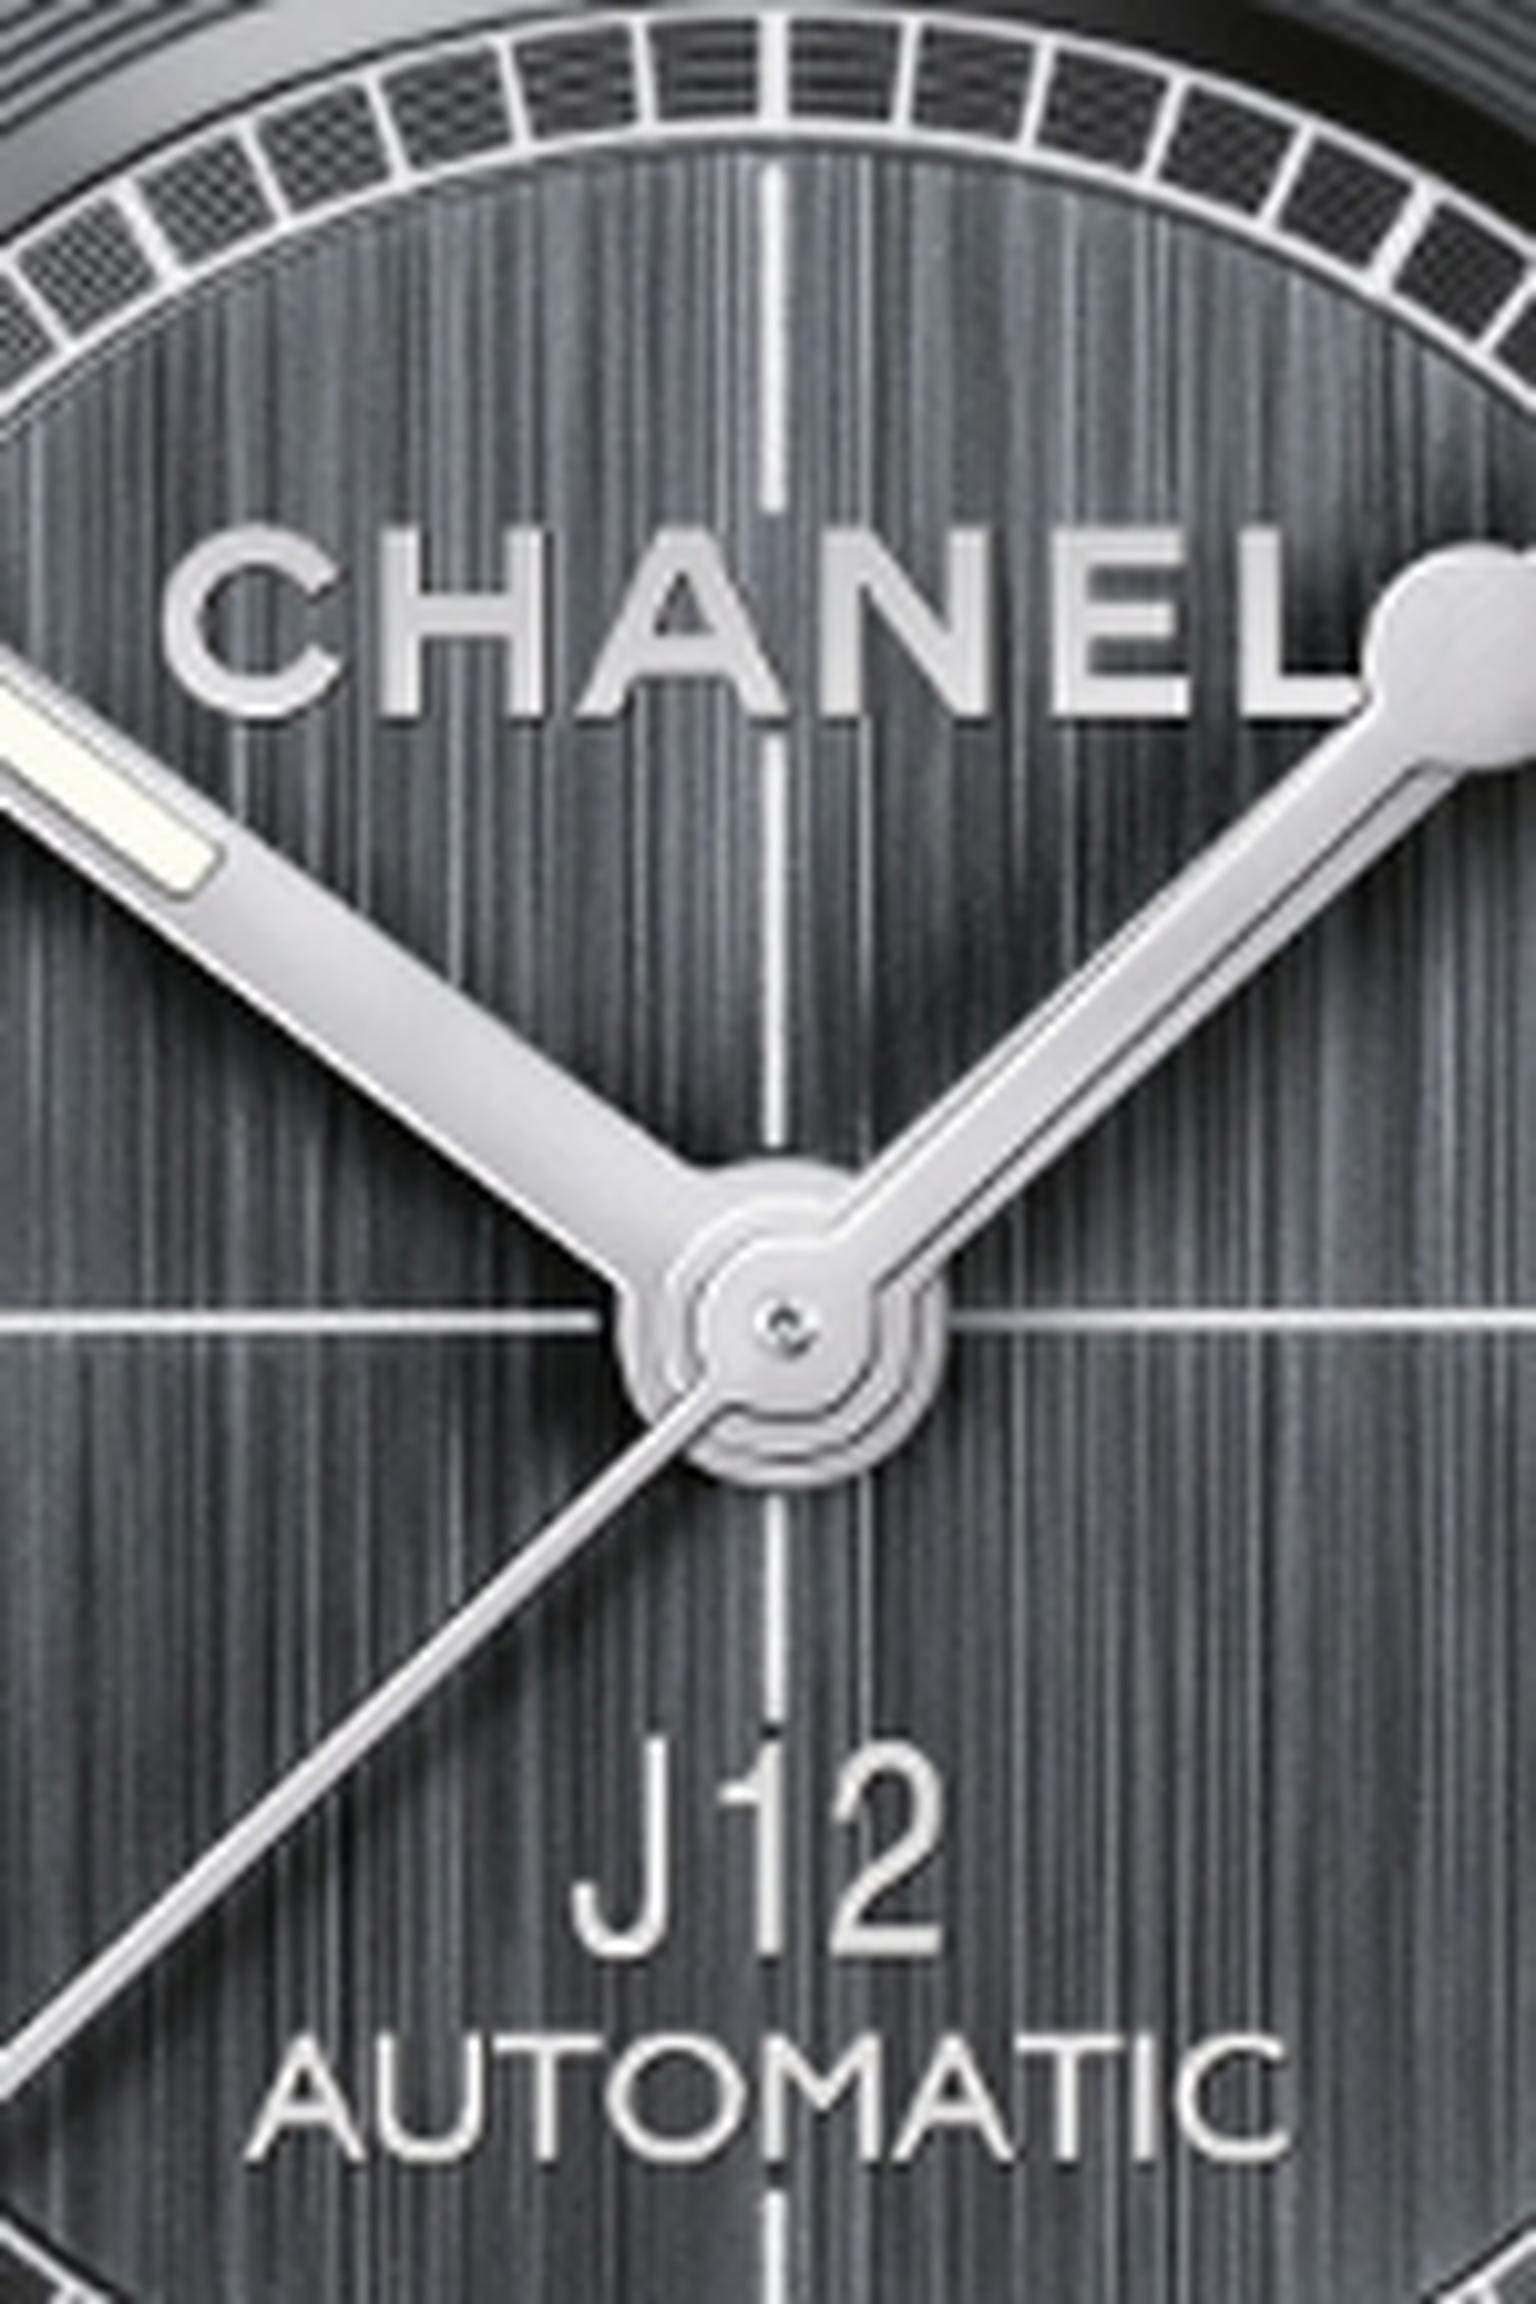 Chanel Chromatic position 3